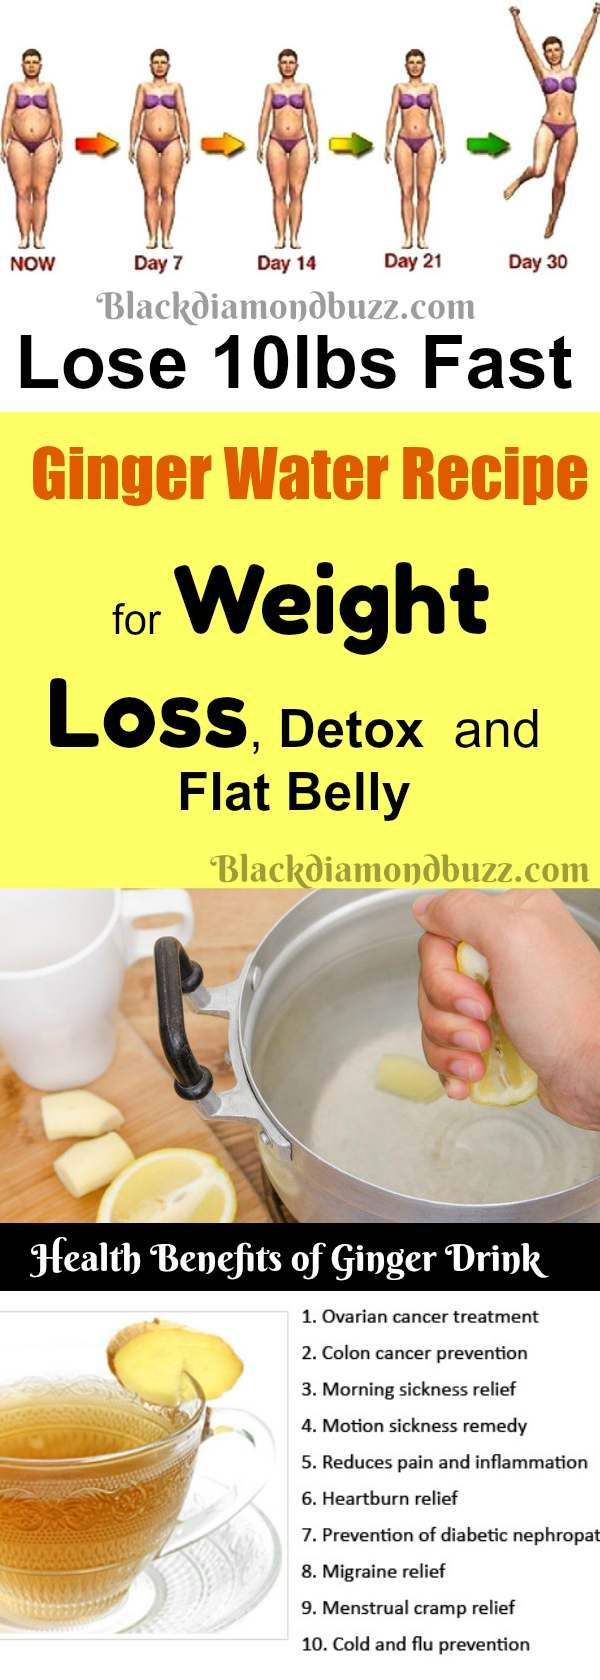 Zucchini weight loss recipes